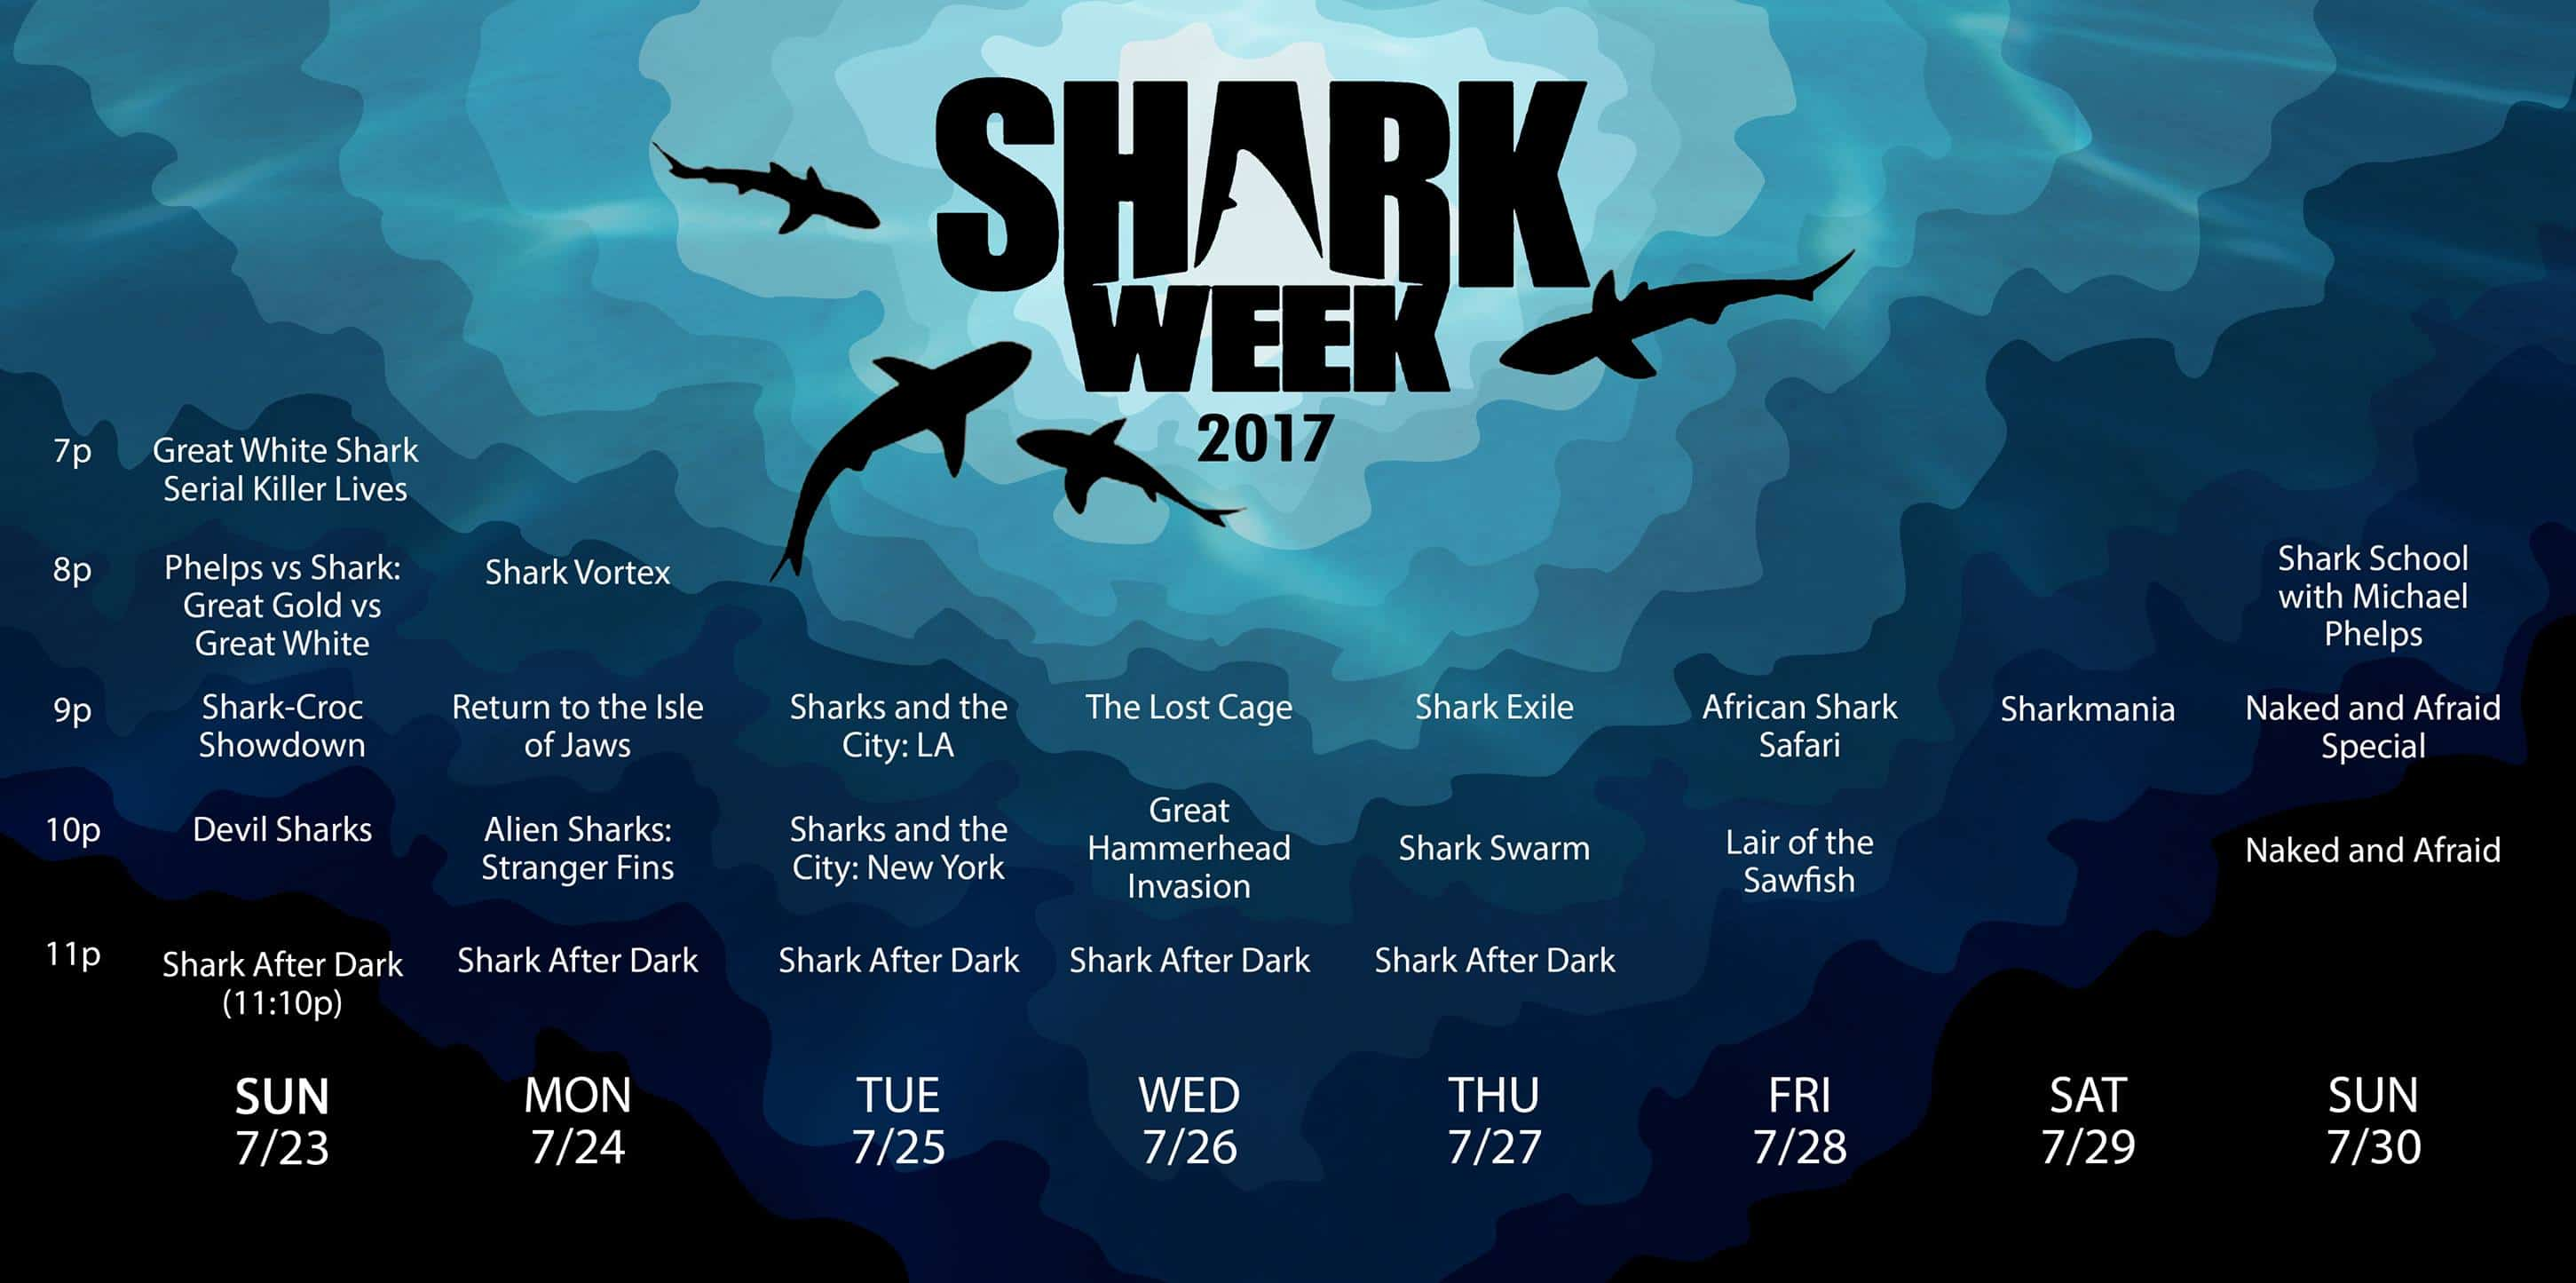 Shark Week Schedule 2017